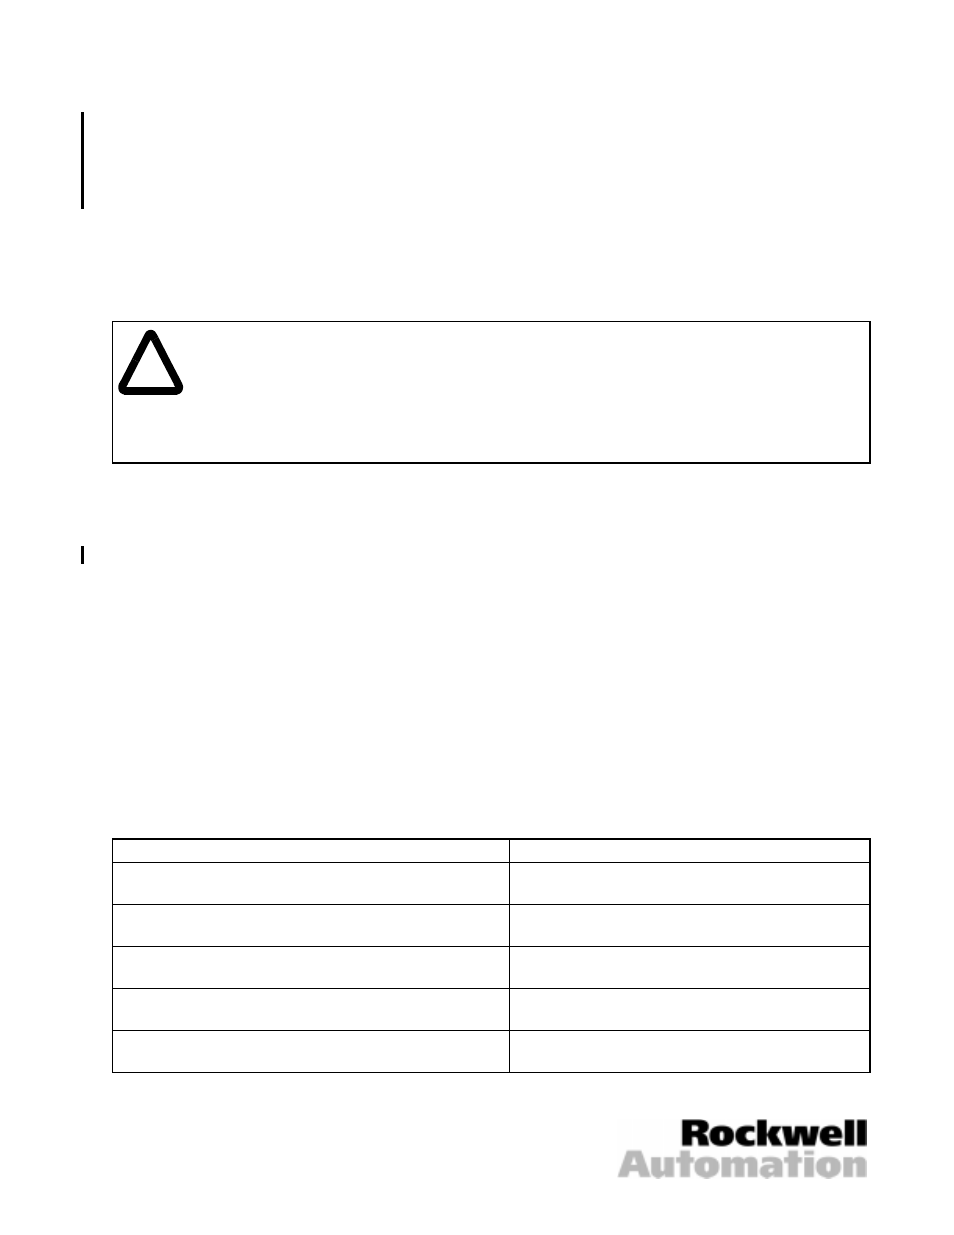 Rockwell Automation Flex Webpak 3000 Dc Drive Inverting Fault Cb Kit Understand Circuit Operation 15 30hp 230vac 3 60hp 460vac User Manual 10 Pages